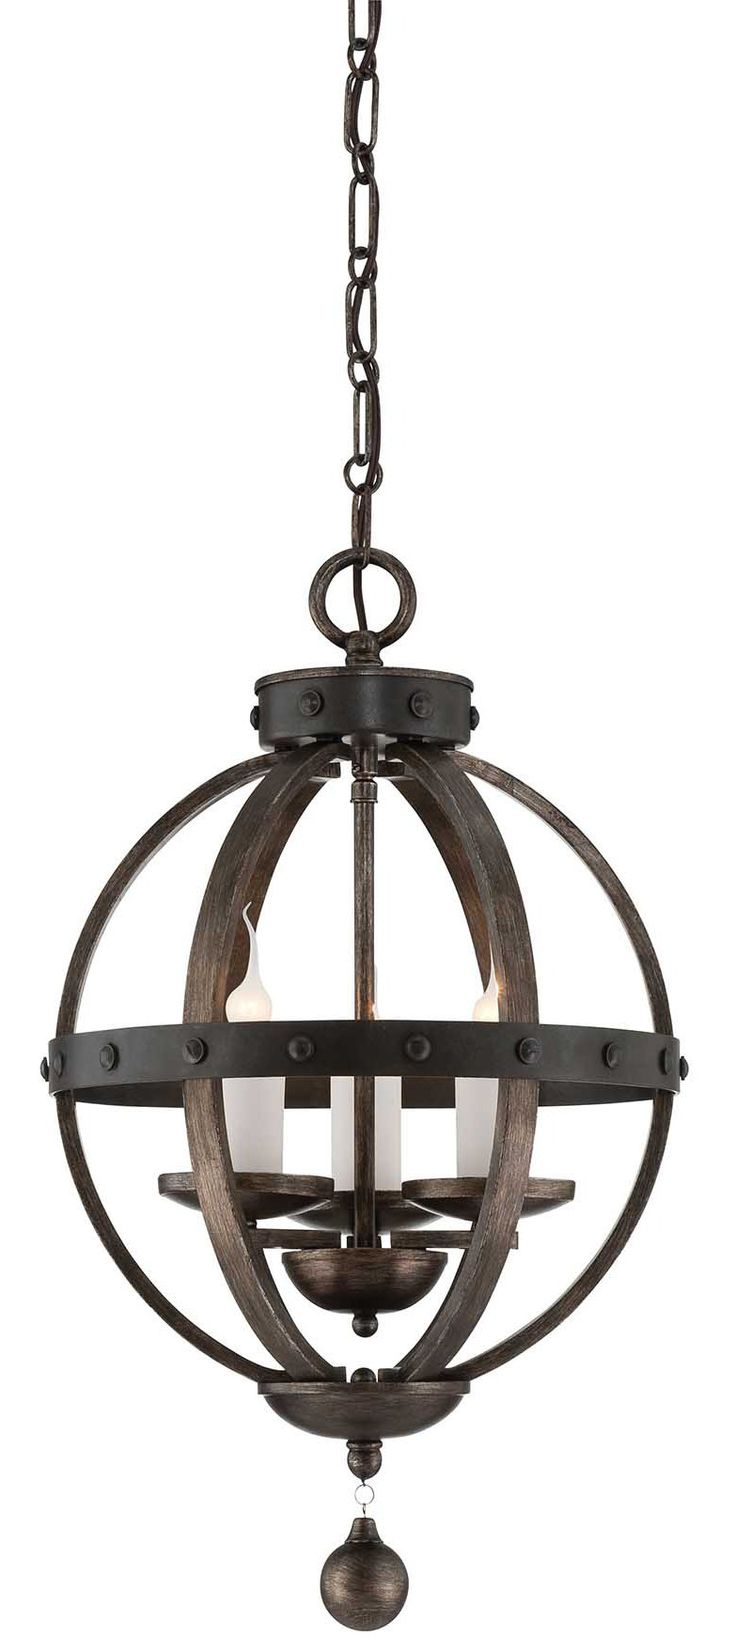 crafted from iron and reclaimed wood this chandelier is finished in black u2013 perfect for creating a statement light feature in your traditional liv